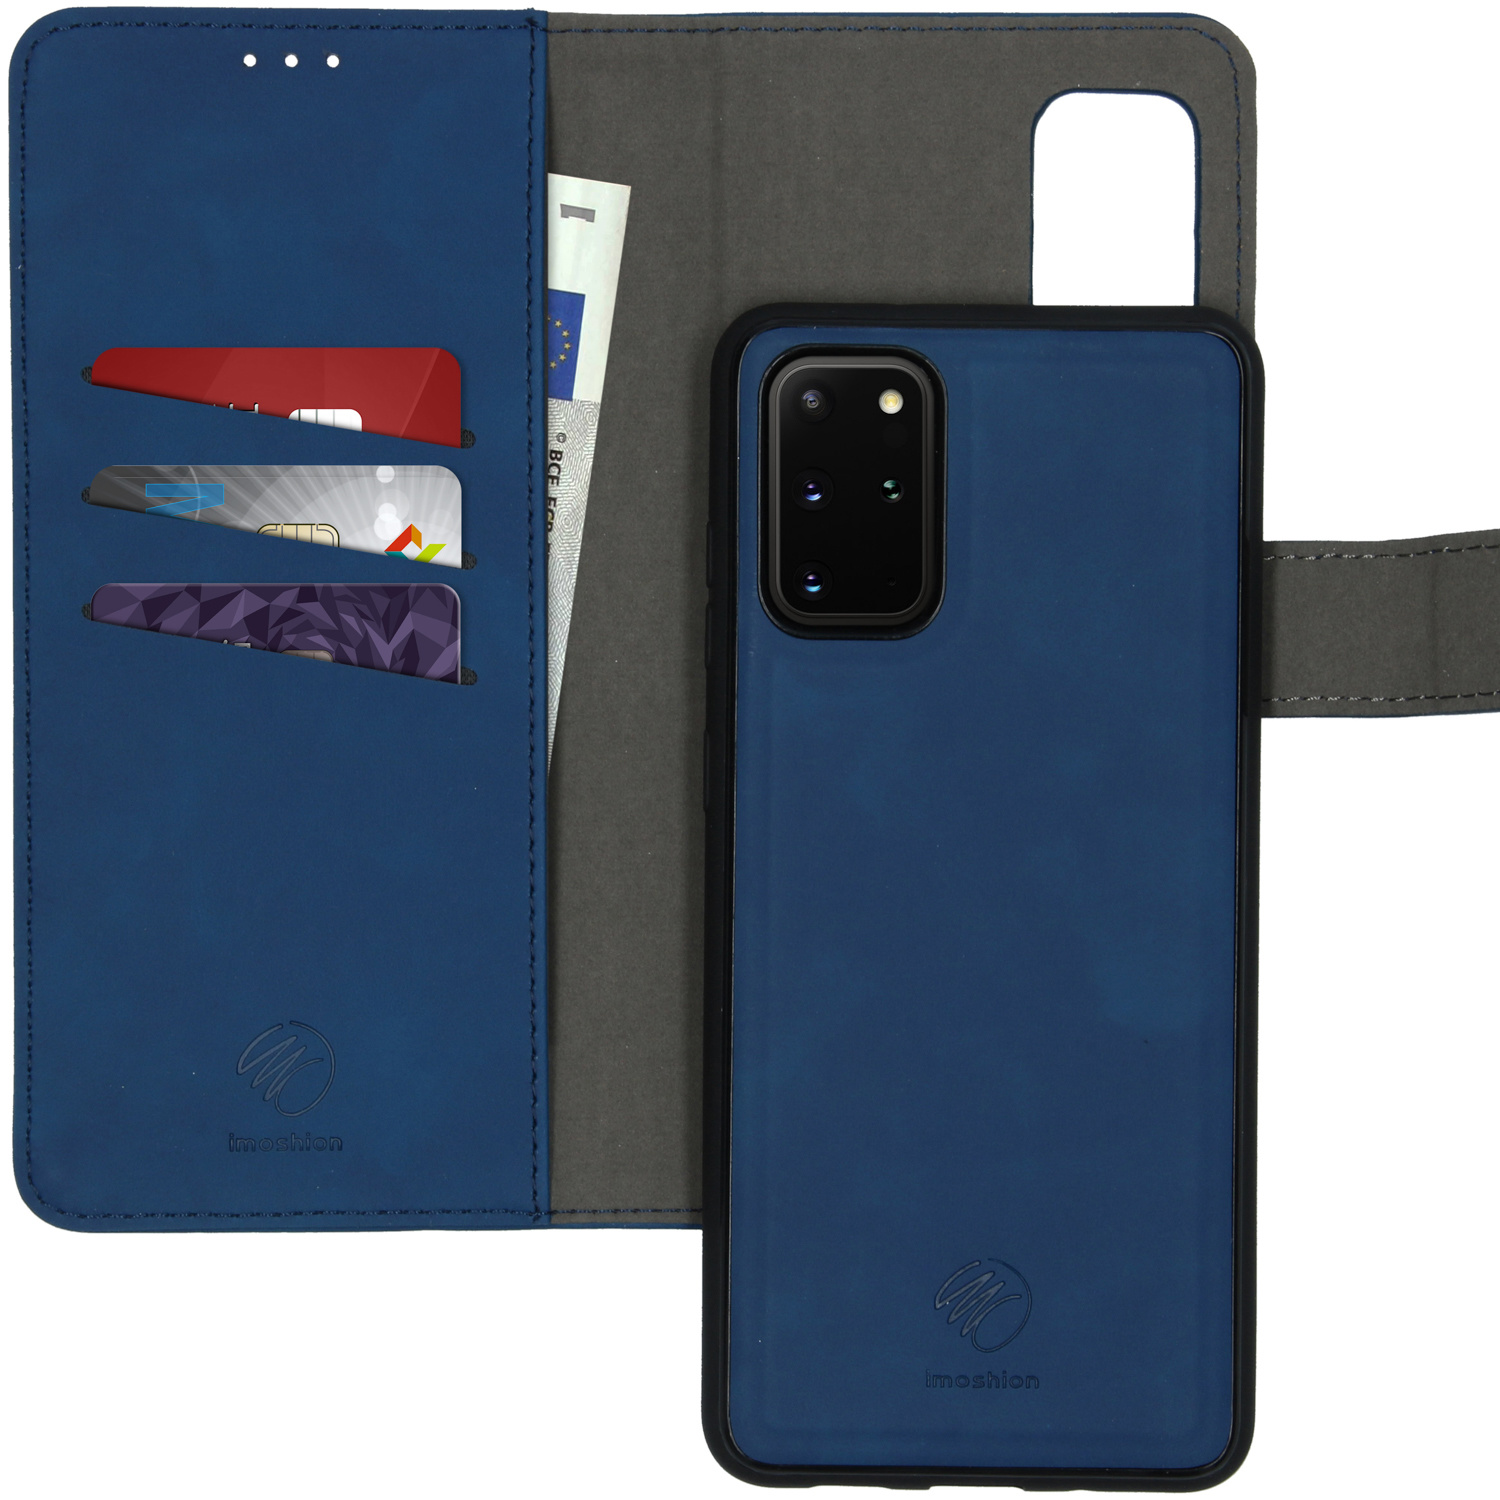 iMoshion Uitneembare 2-in-1 Luxe Booktype Samsung Galaxy S20 Plus